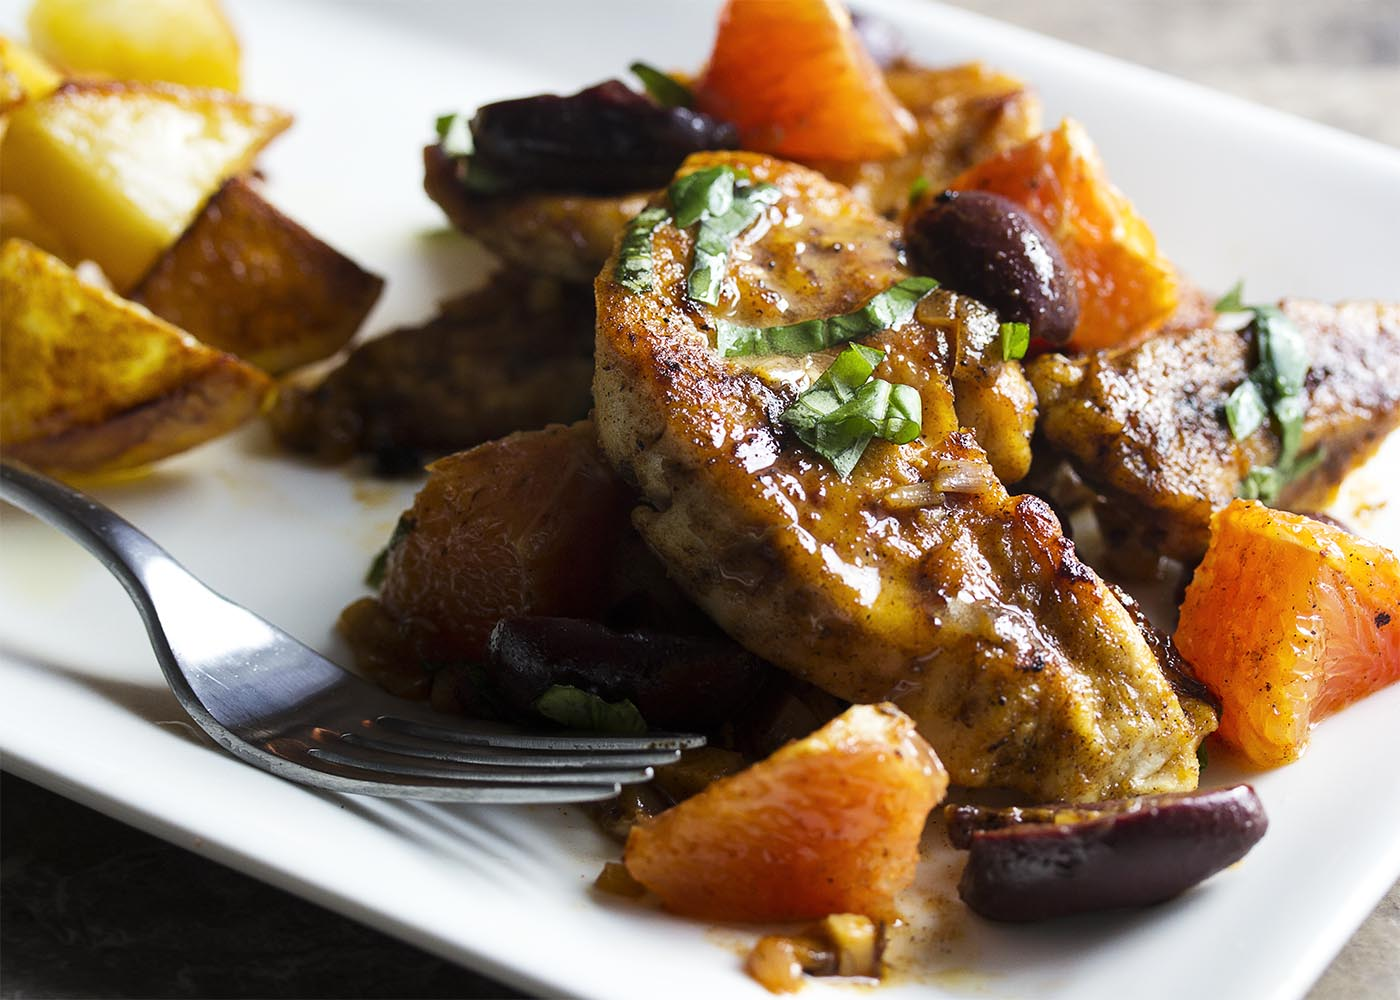 Easy and quick! This Mediterranean chicken skillet combines tender chicken breast with olives and oranges for a spicy/sweet dinner recipe. Great with roasted potatoes or over rice. | justalittlebitofbacon.com